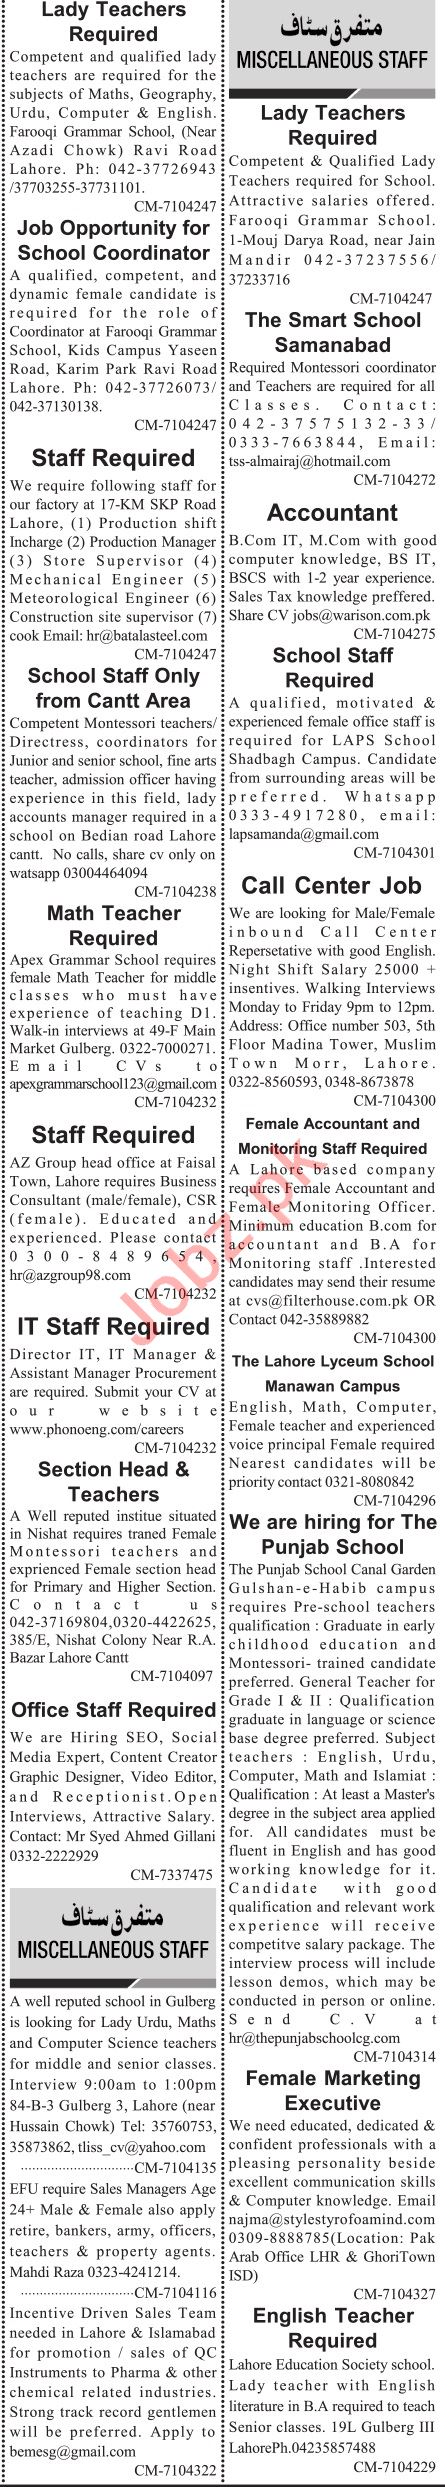 Jang Sunday Classified Ads 19 Sep 2021 for Admin Staff